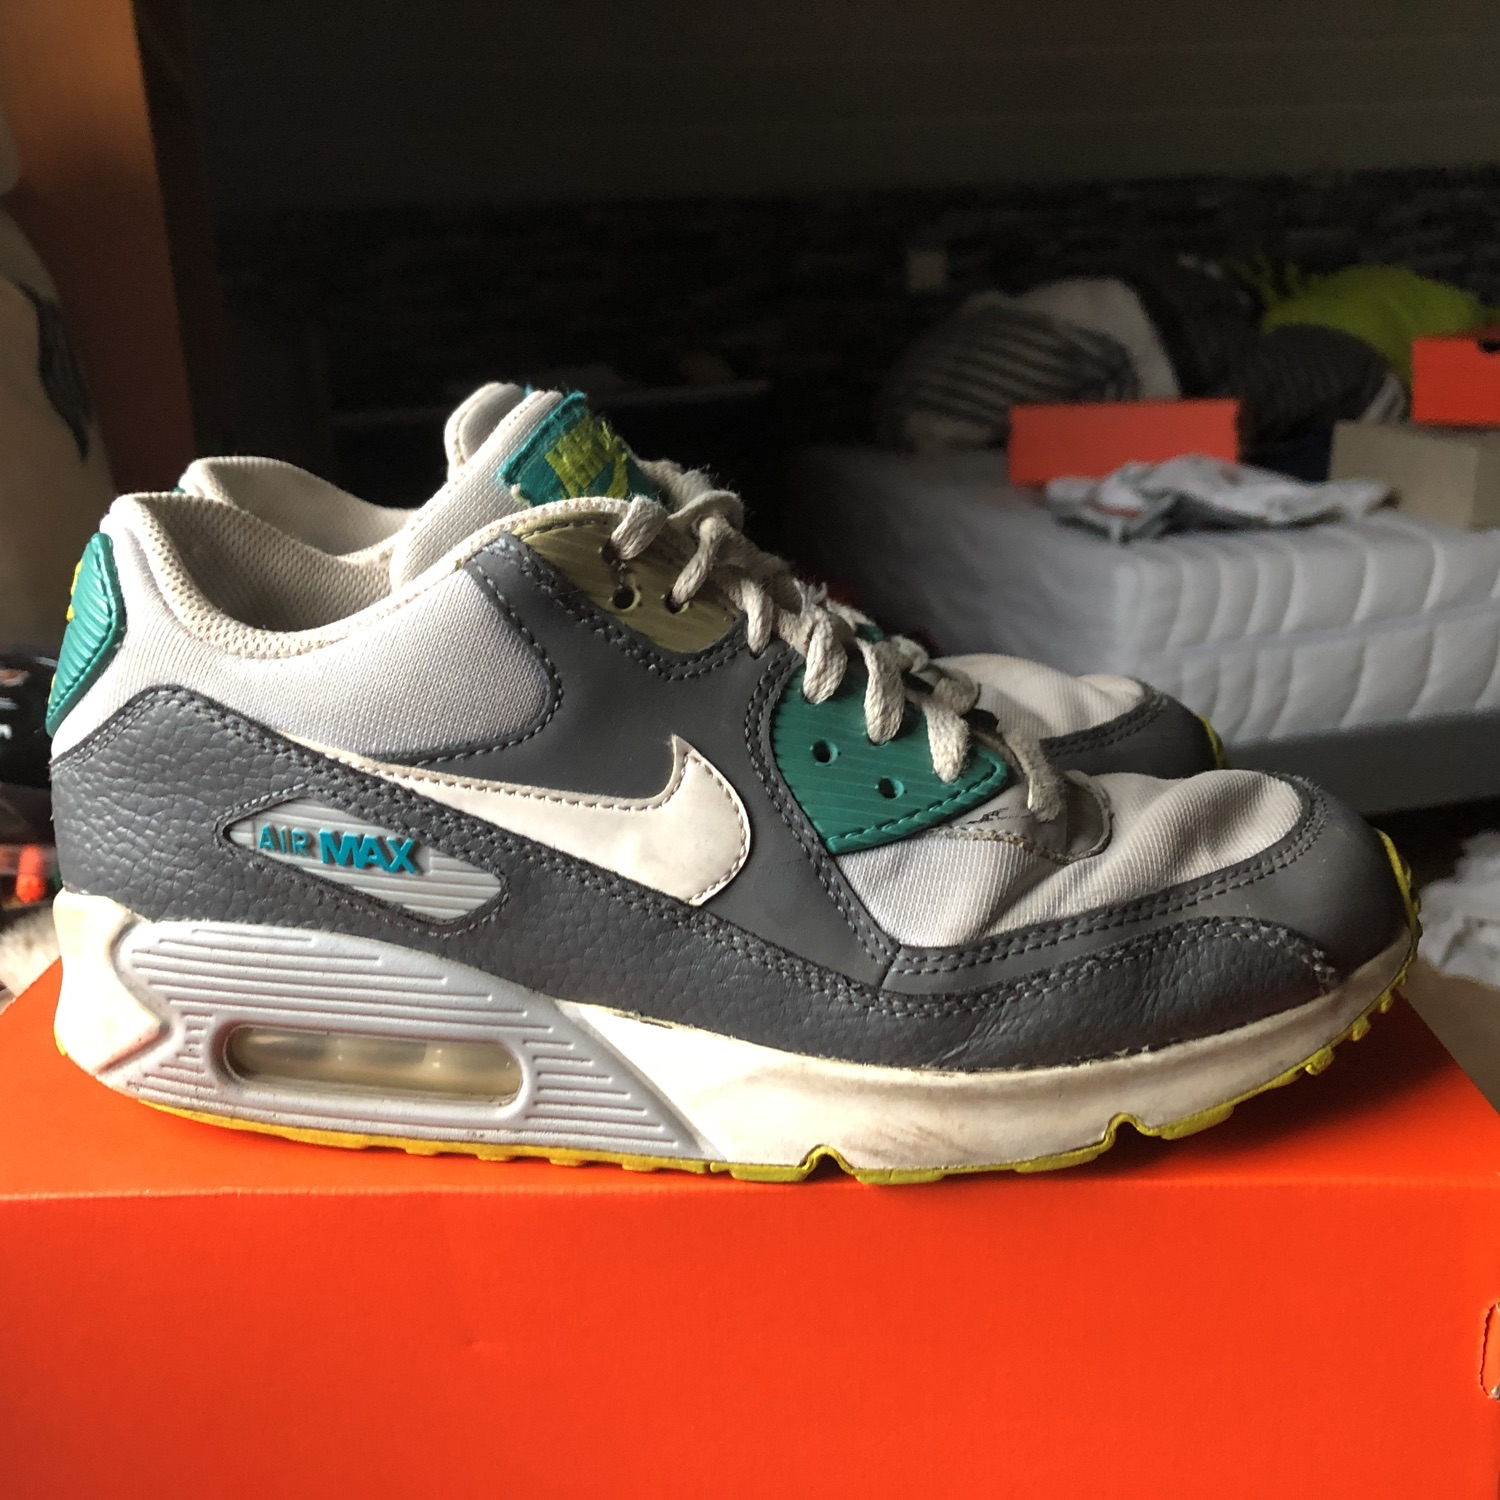 release date 2d9a7 0bec2 Nike Air Max 90. €25.00. US 6.5